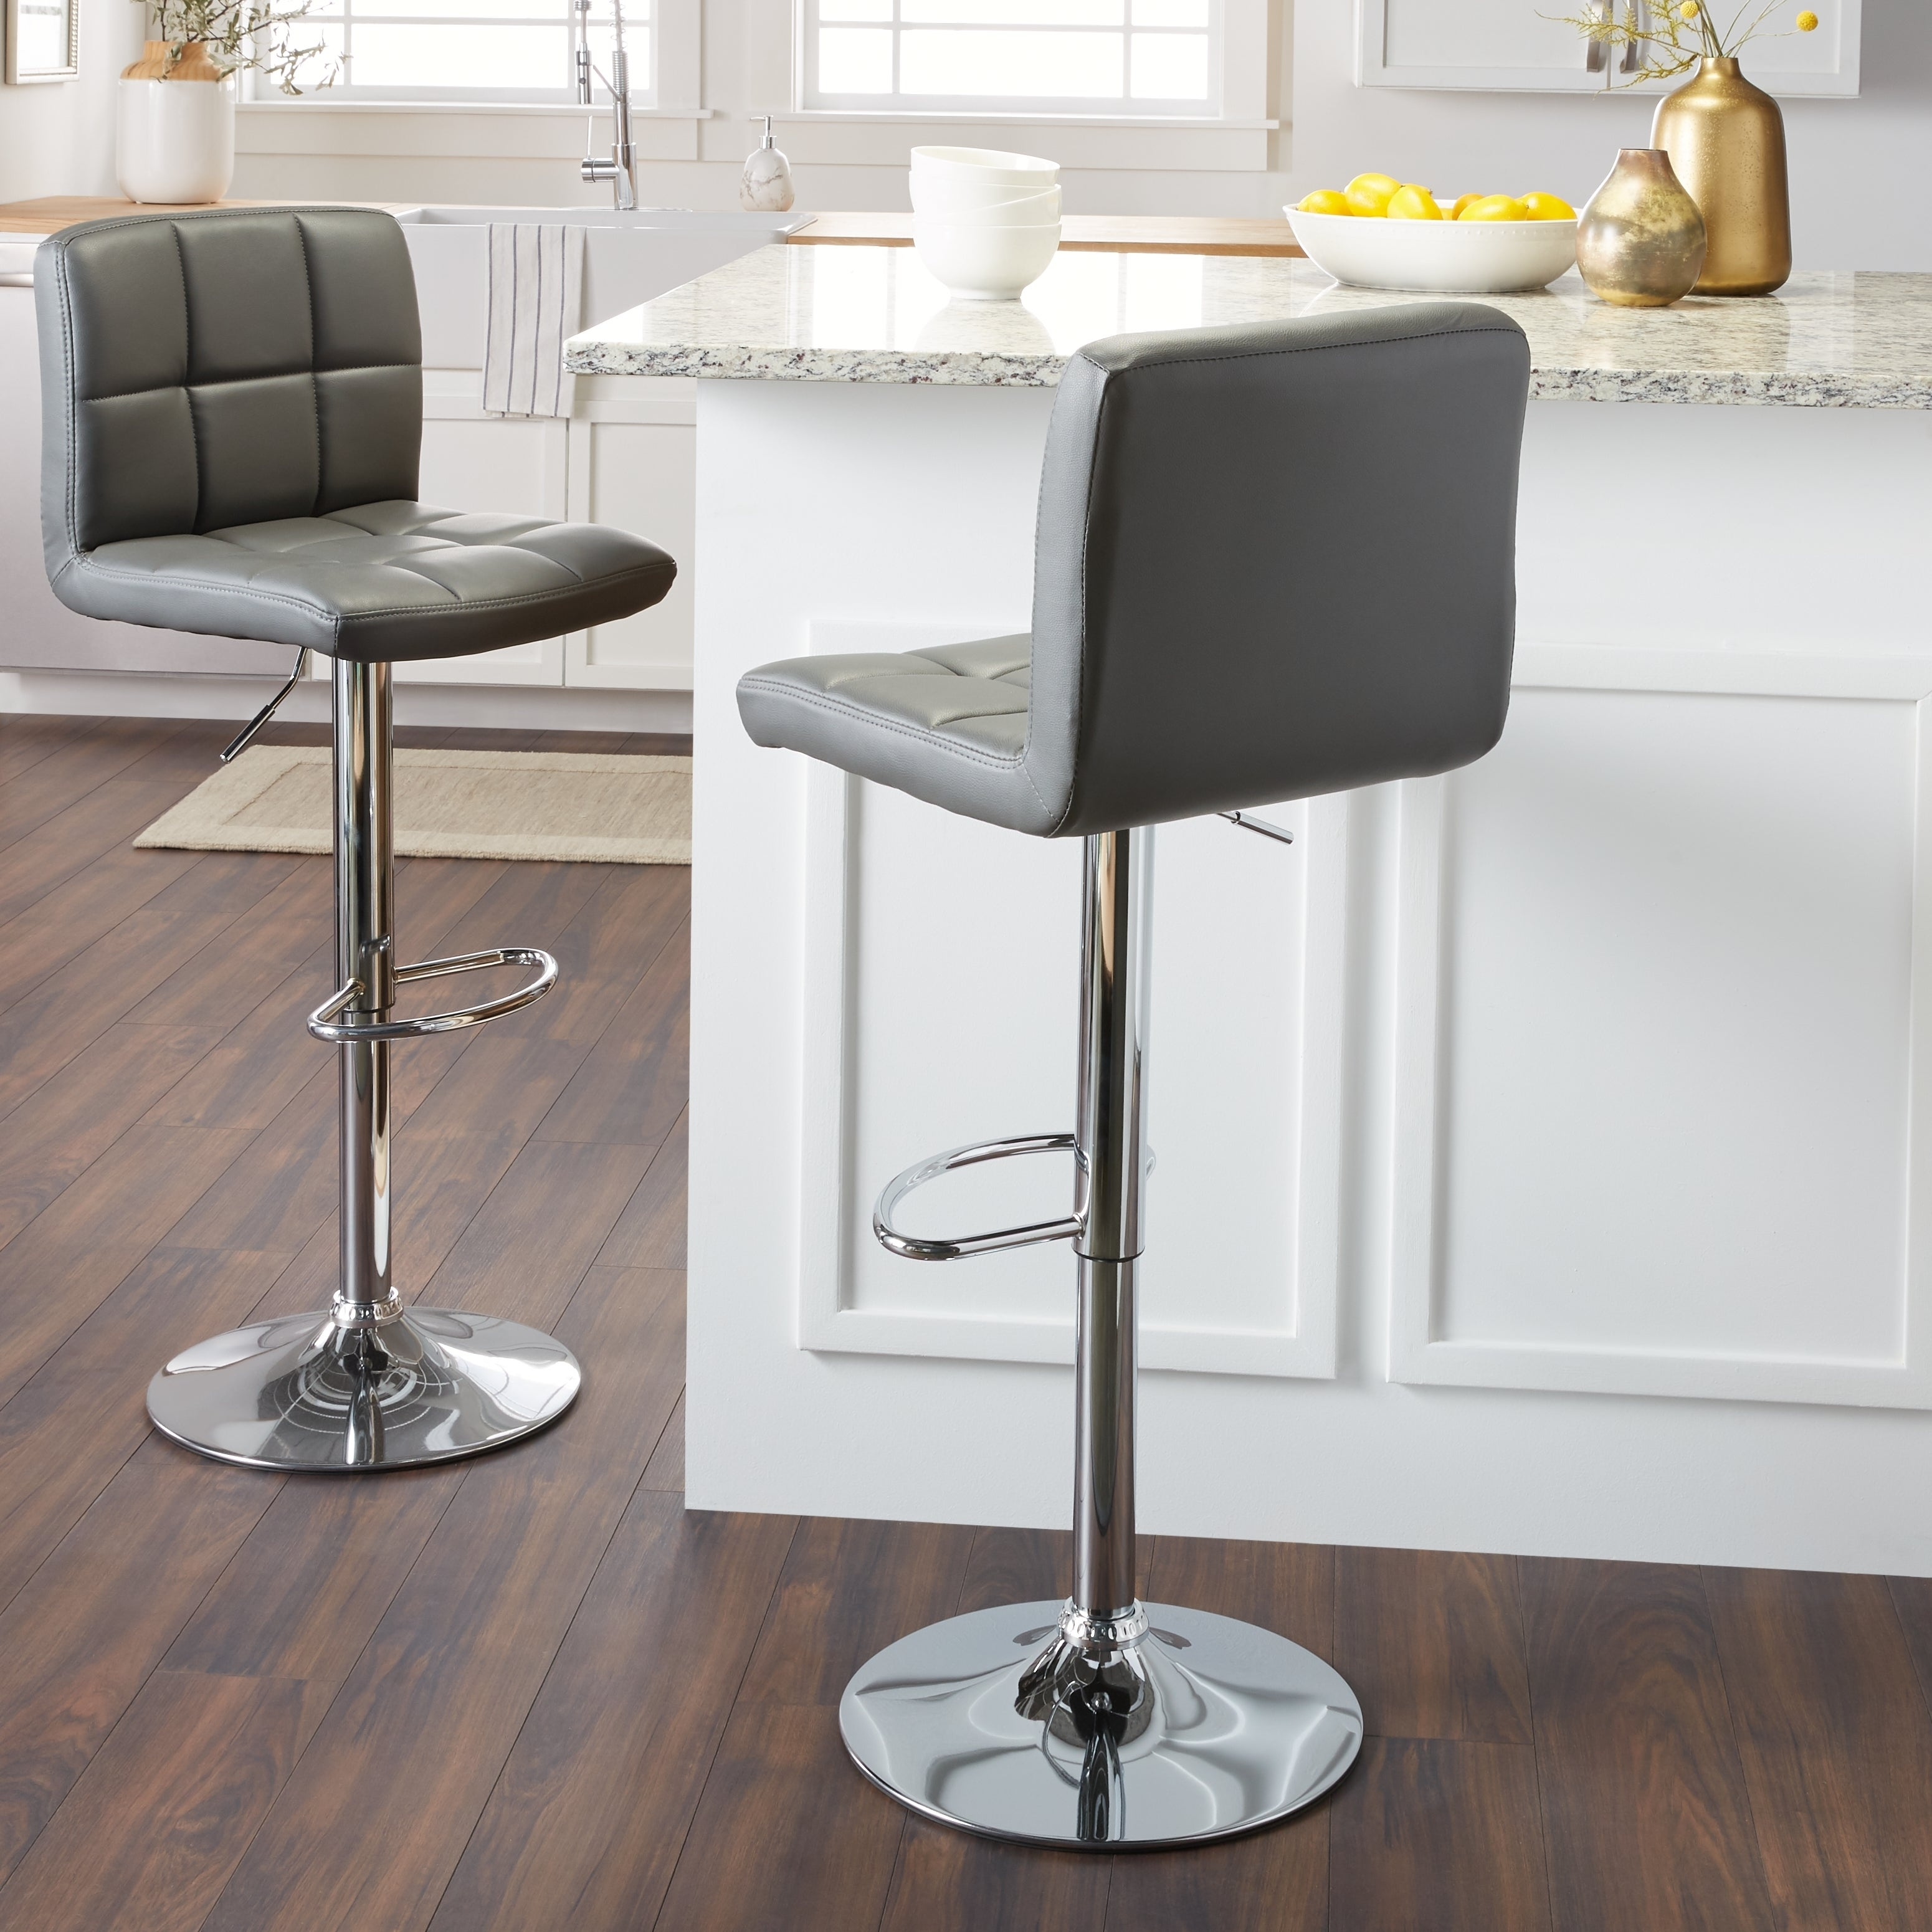 Buy counter bar stools online at overstock com our best dining room bar furniture deals